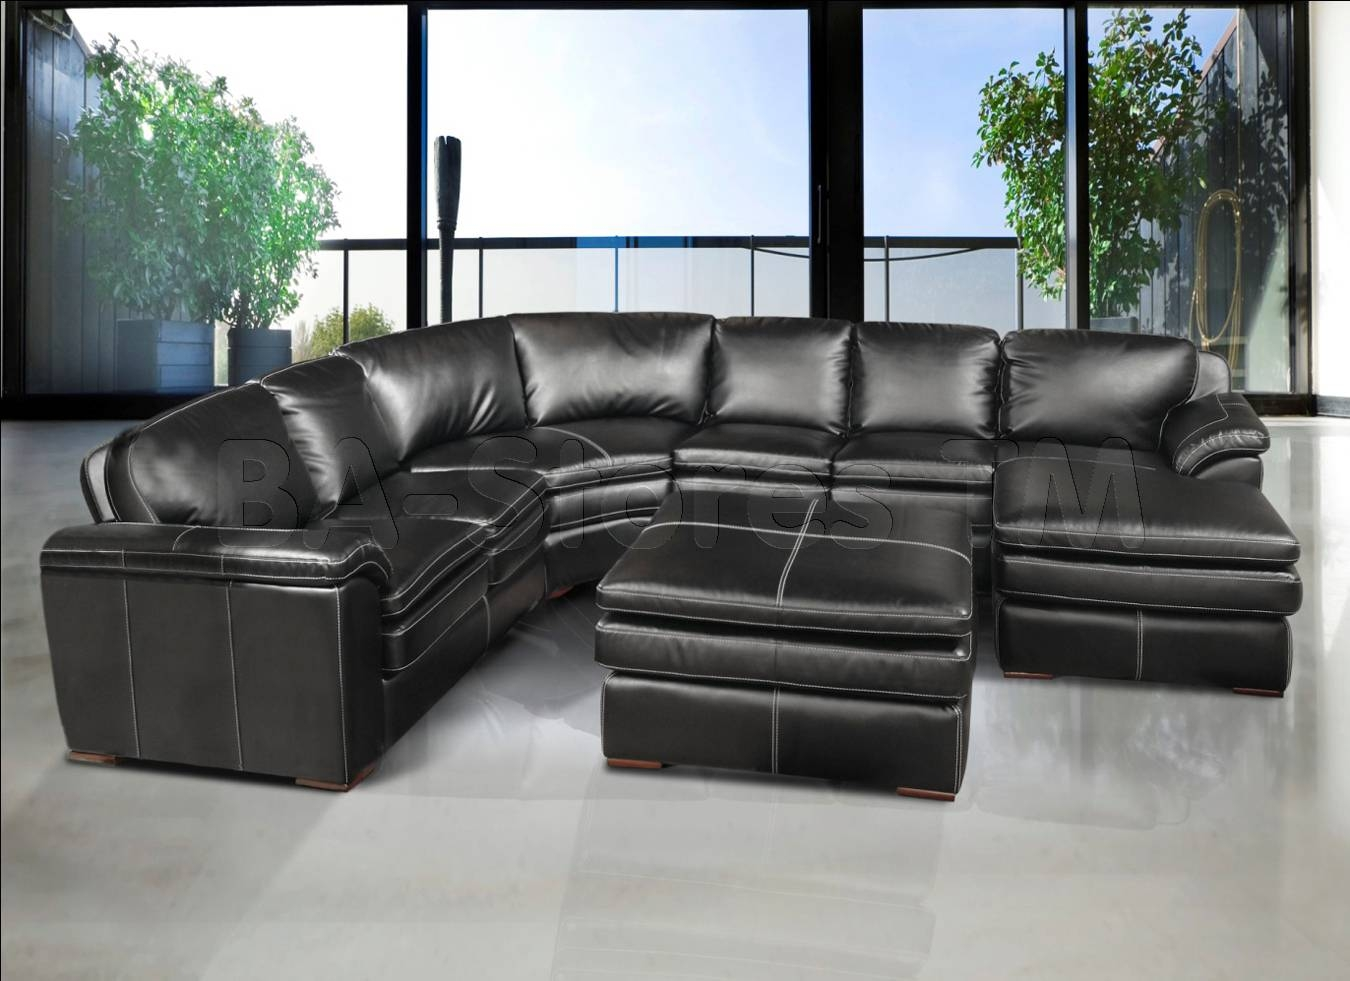 Furniture: Nostalgic Fancy Gray Leather Sectional For Living Room with regard to Gray Leather Sectional Sofas (Image 15 of 30)